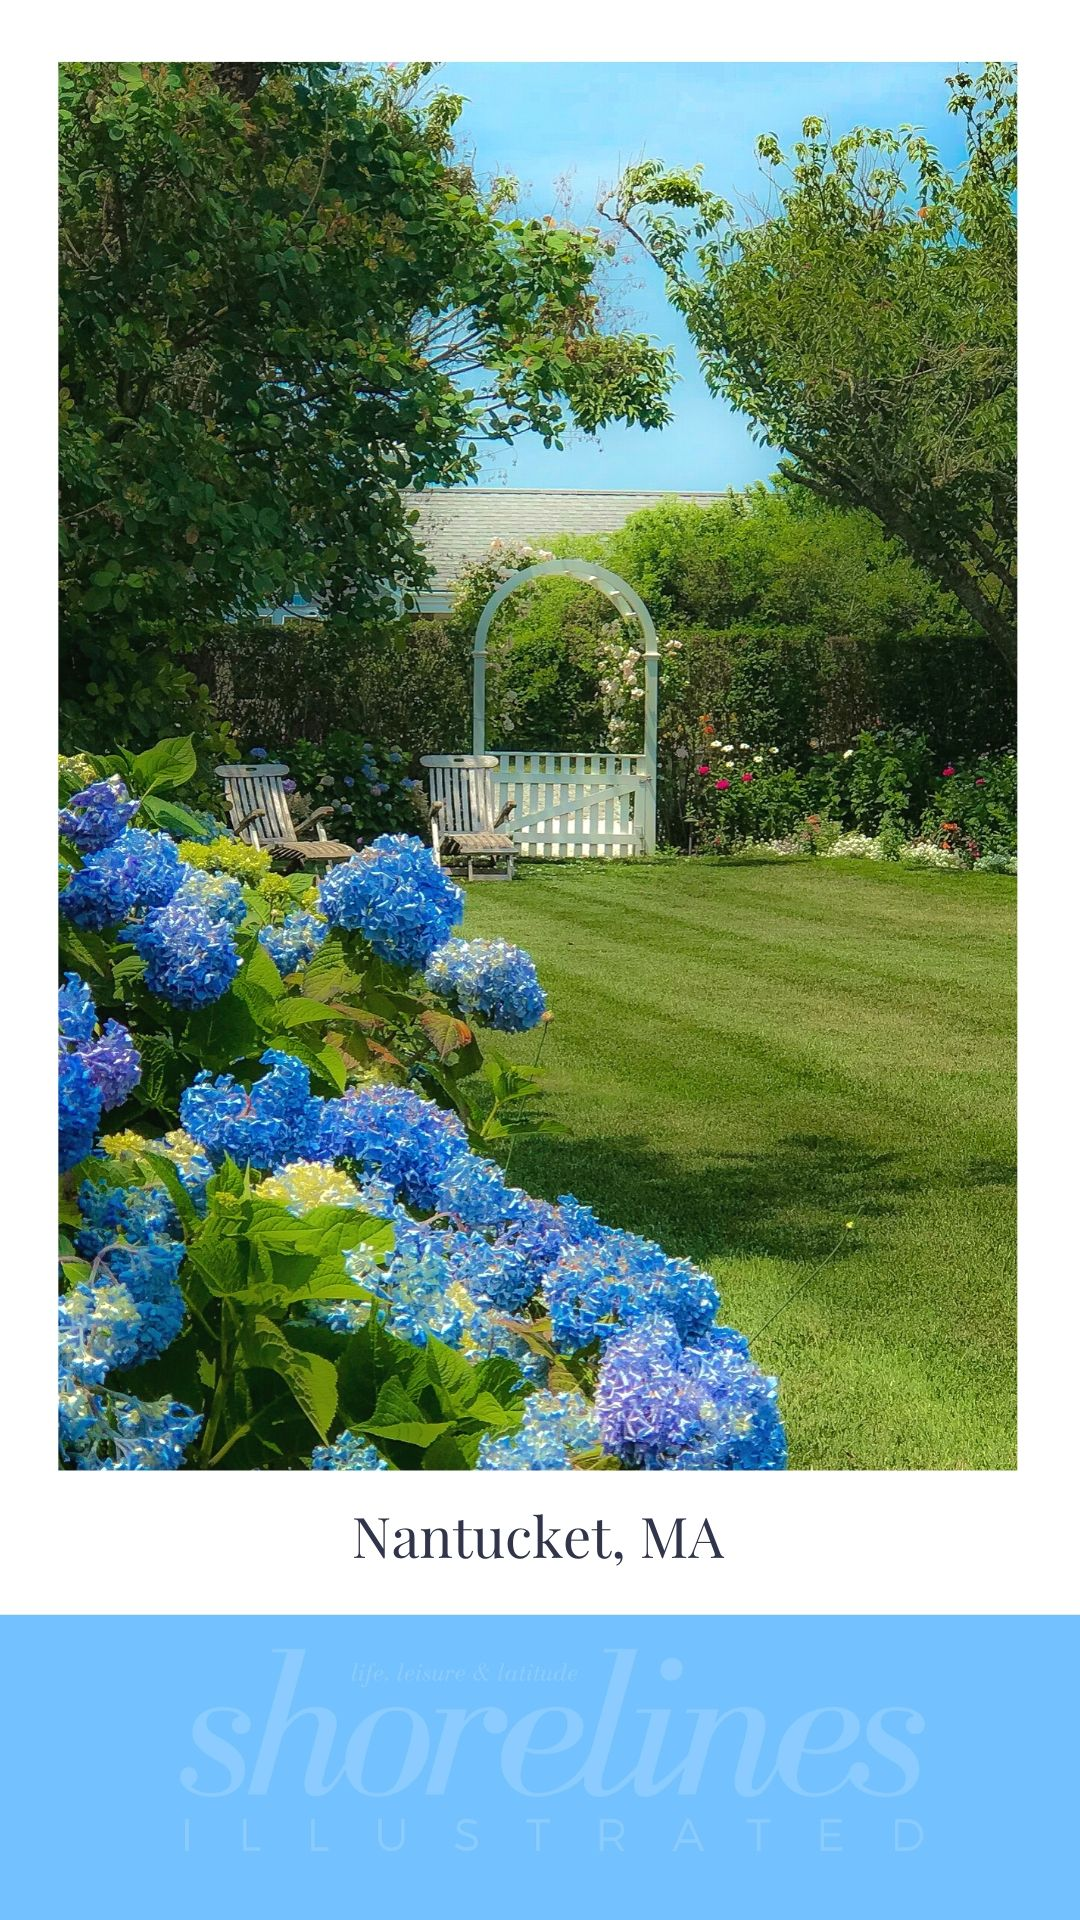 Blue Hydrangeas of New England-18